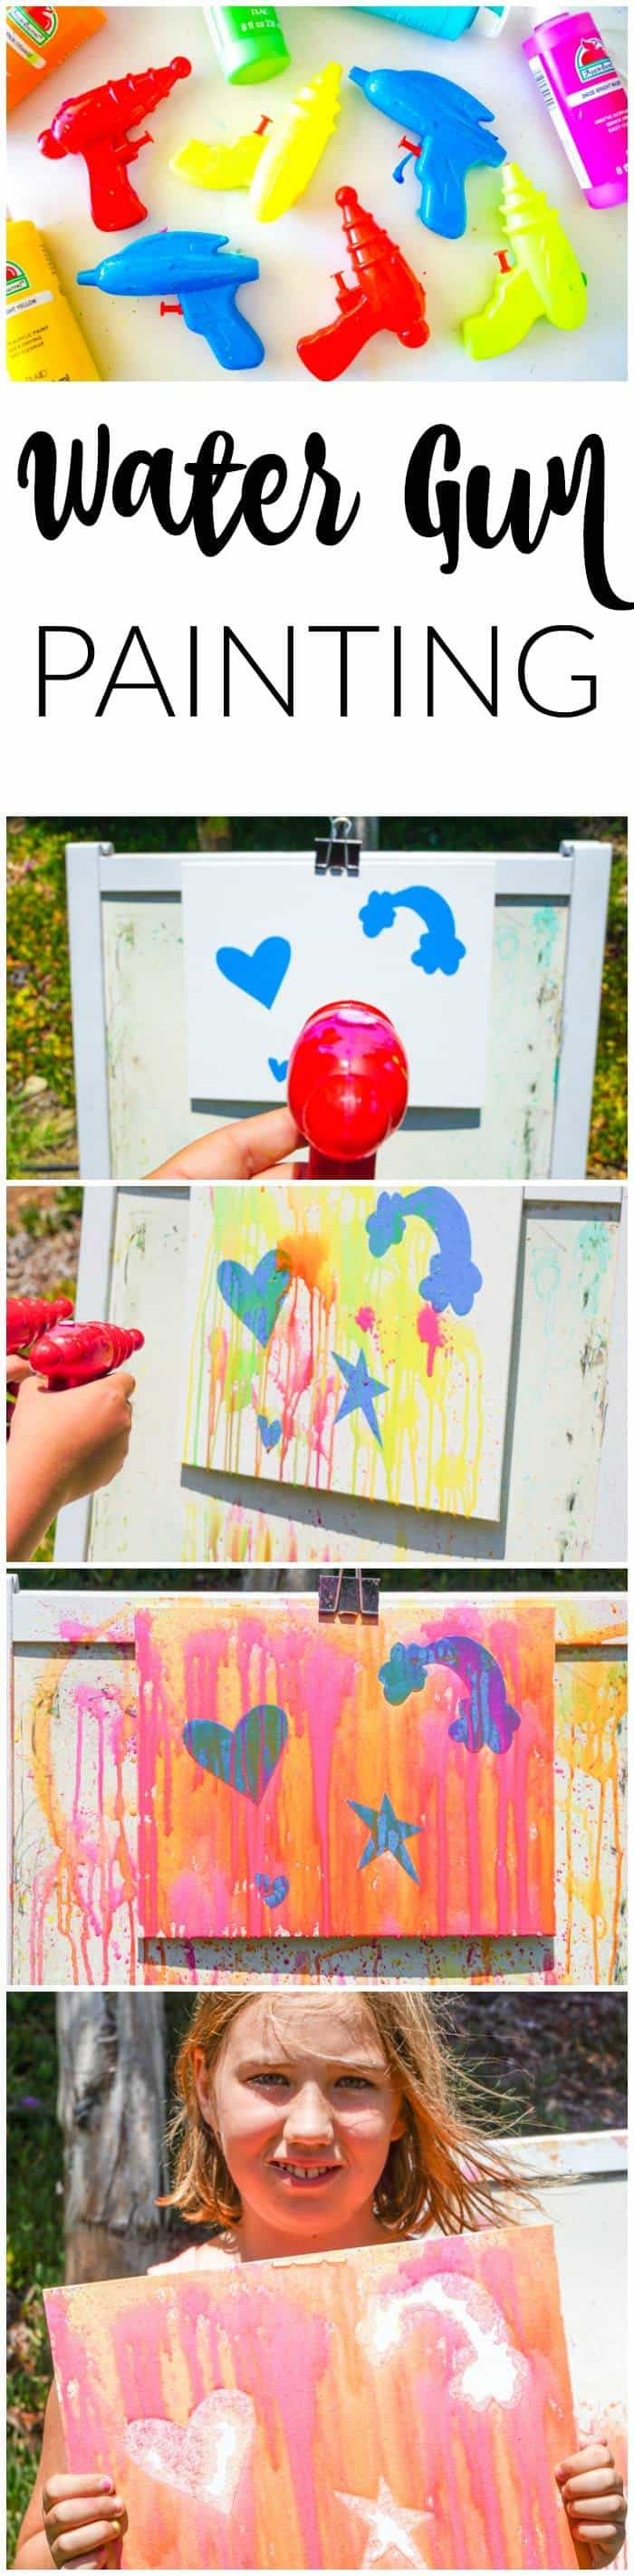 Water gun painting fun for Summer. Looking for Summer activities for the kids? The kids LOVE water gun painting throughout the Summer.